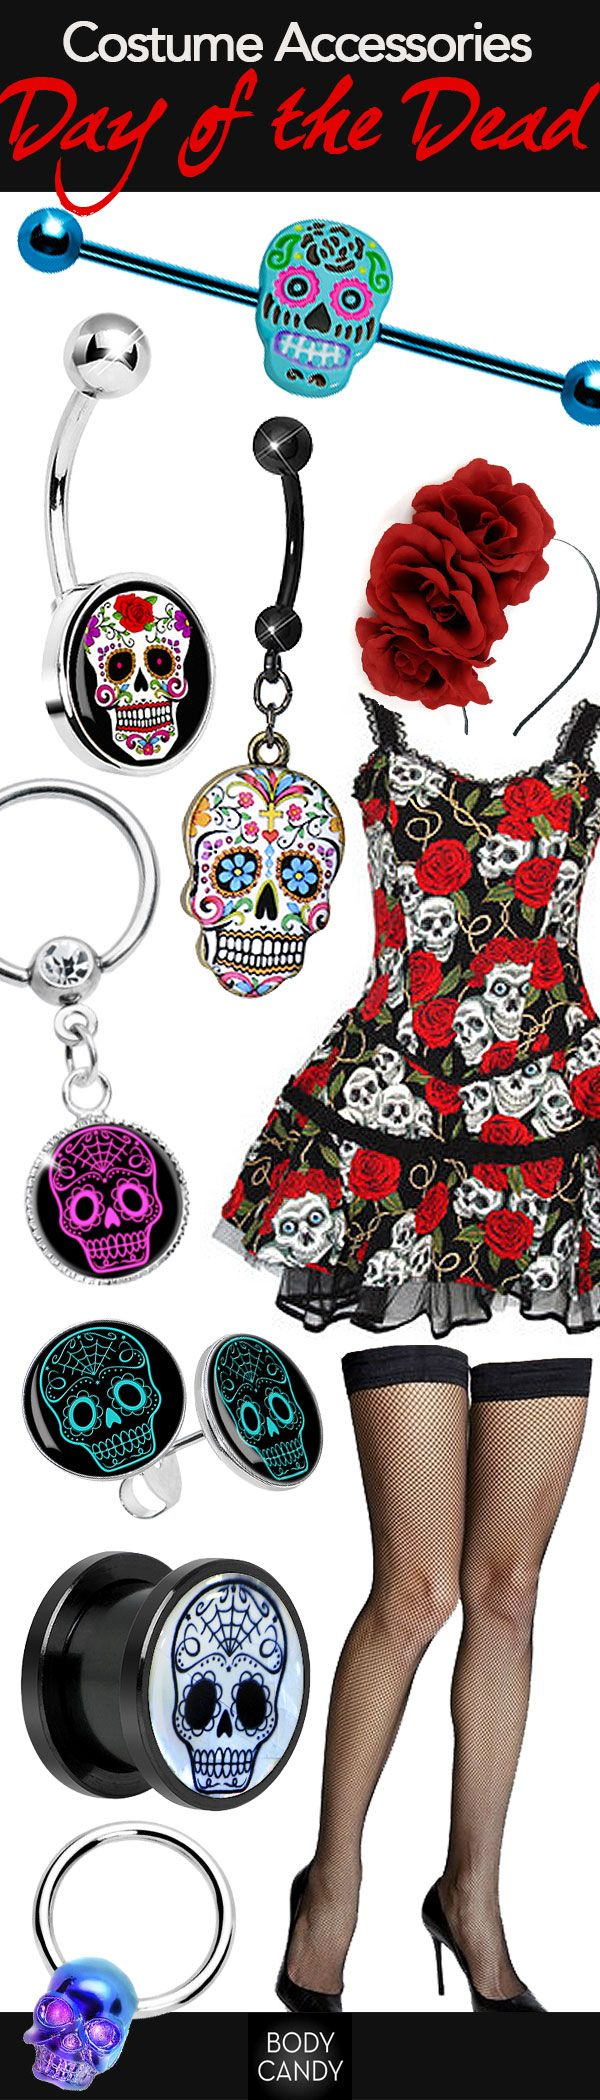 The 25 best savanna cider ideas on pinterest hard cider for Day of the dead body jewelry